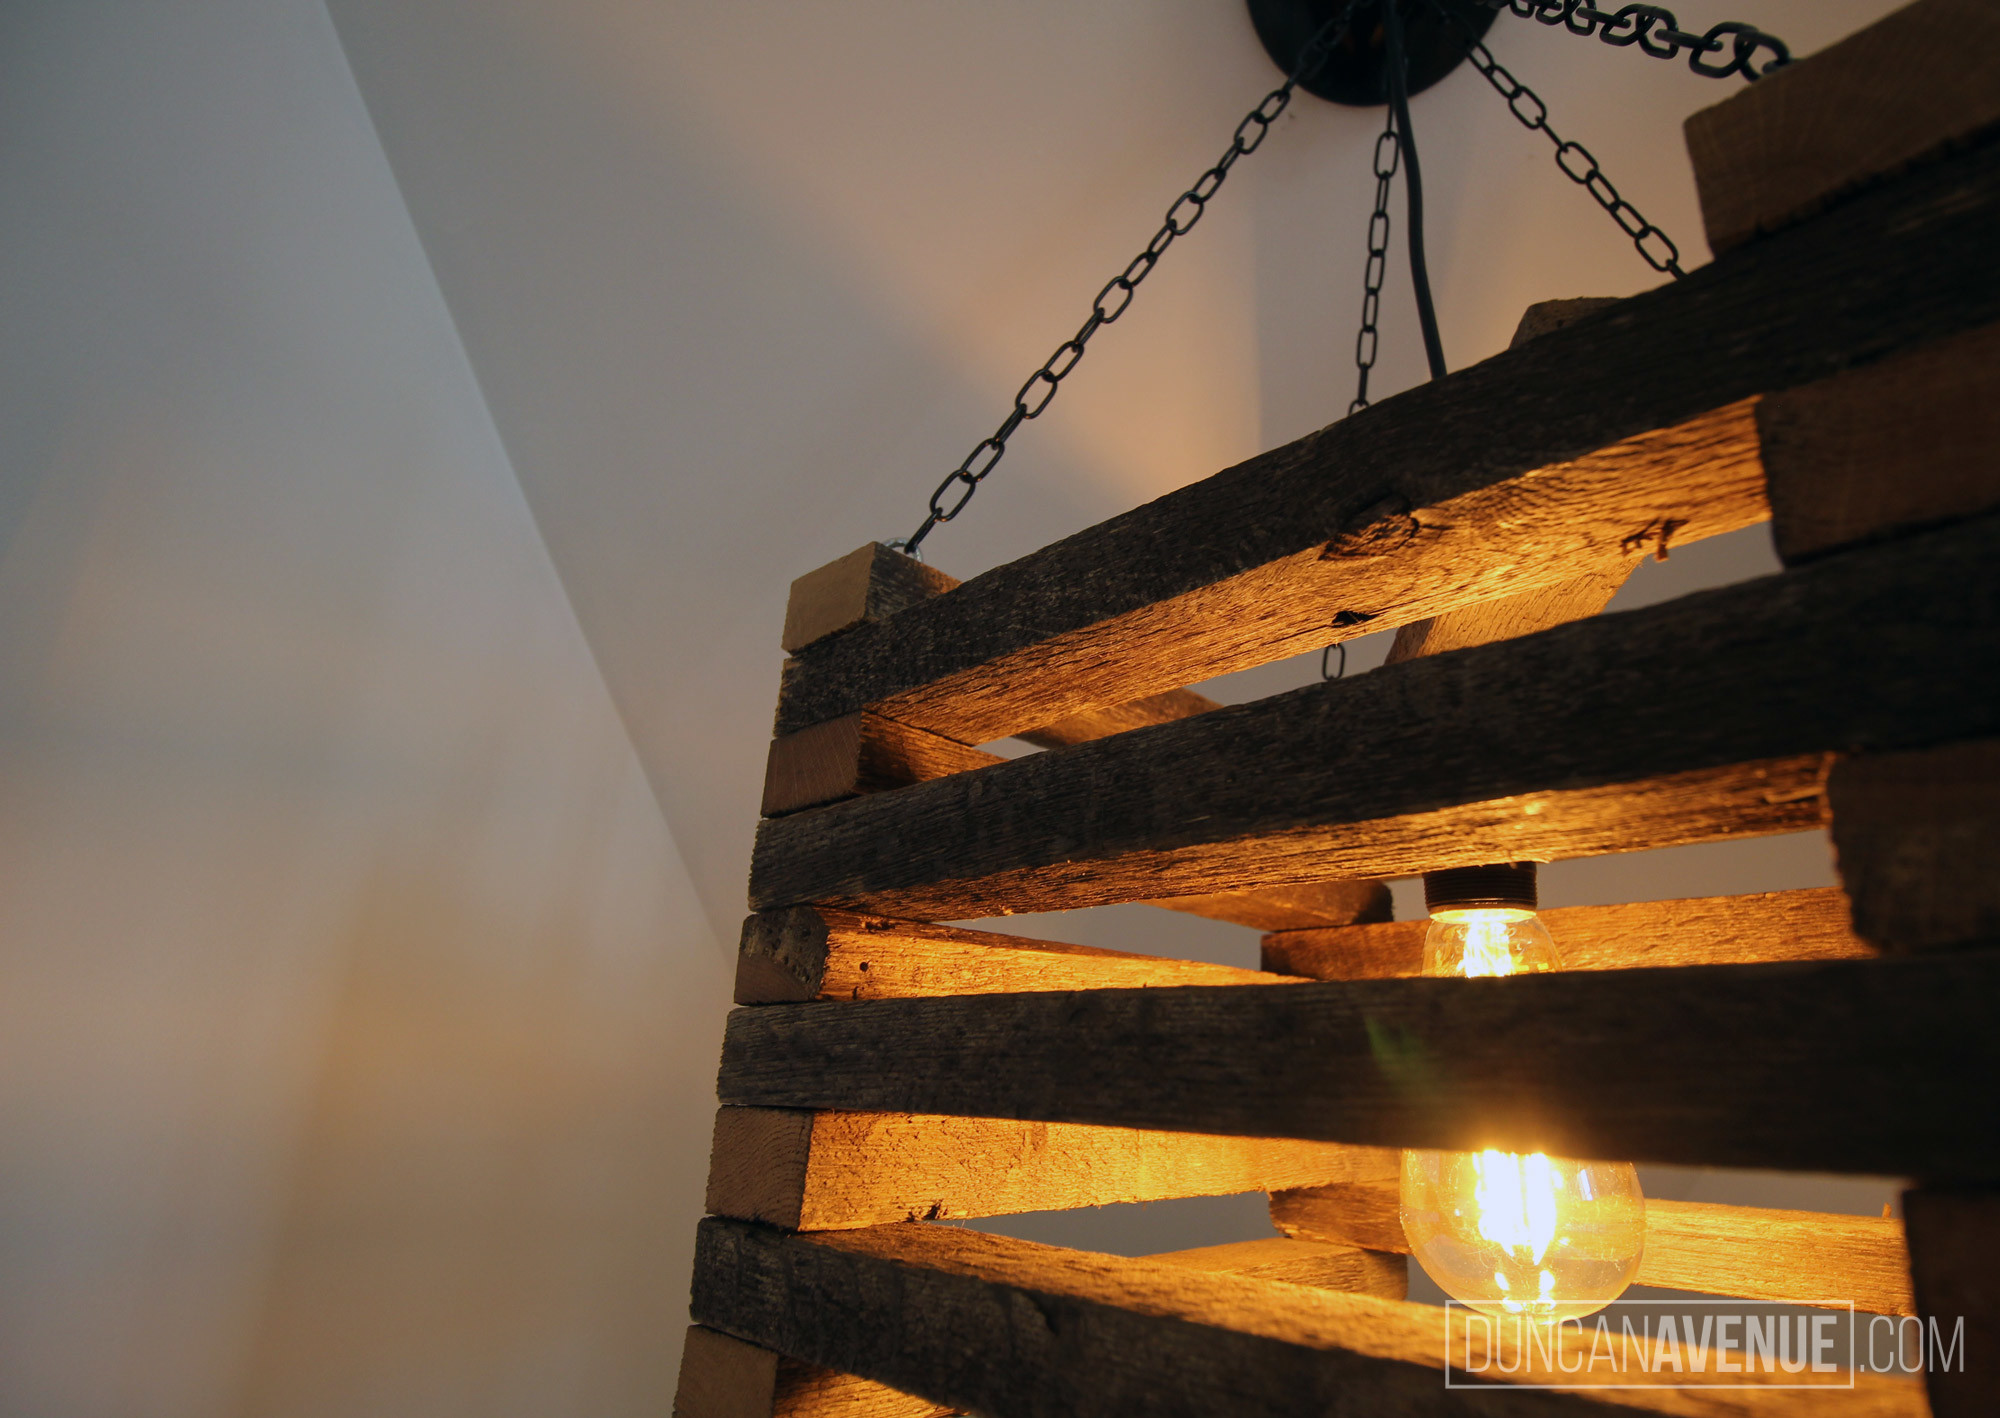 Custom lighting design lamps light fixtures architectural custom light fixture design reclaimed wood by duncan avenue group hudson valley new arubaitofo Image collections